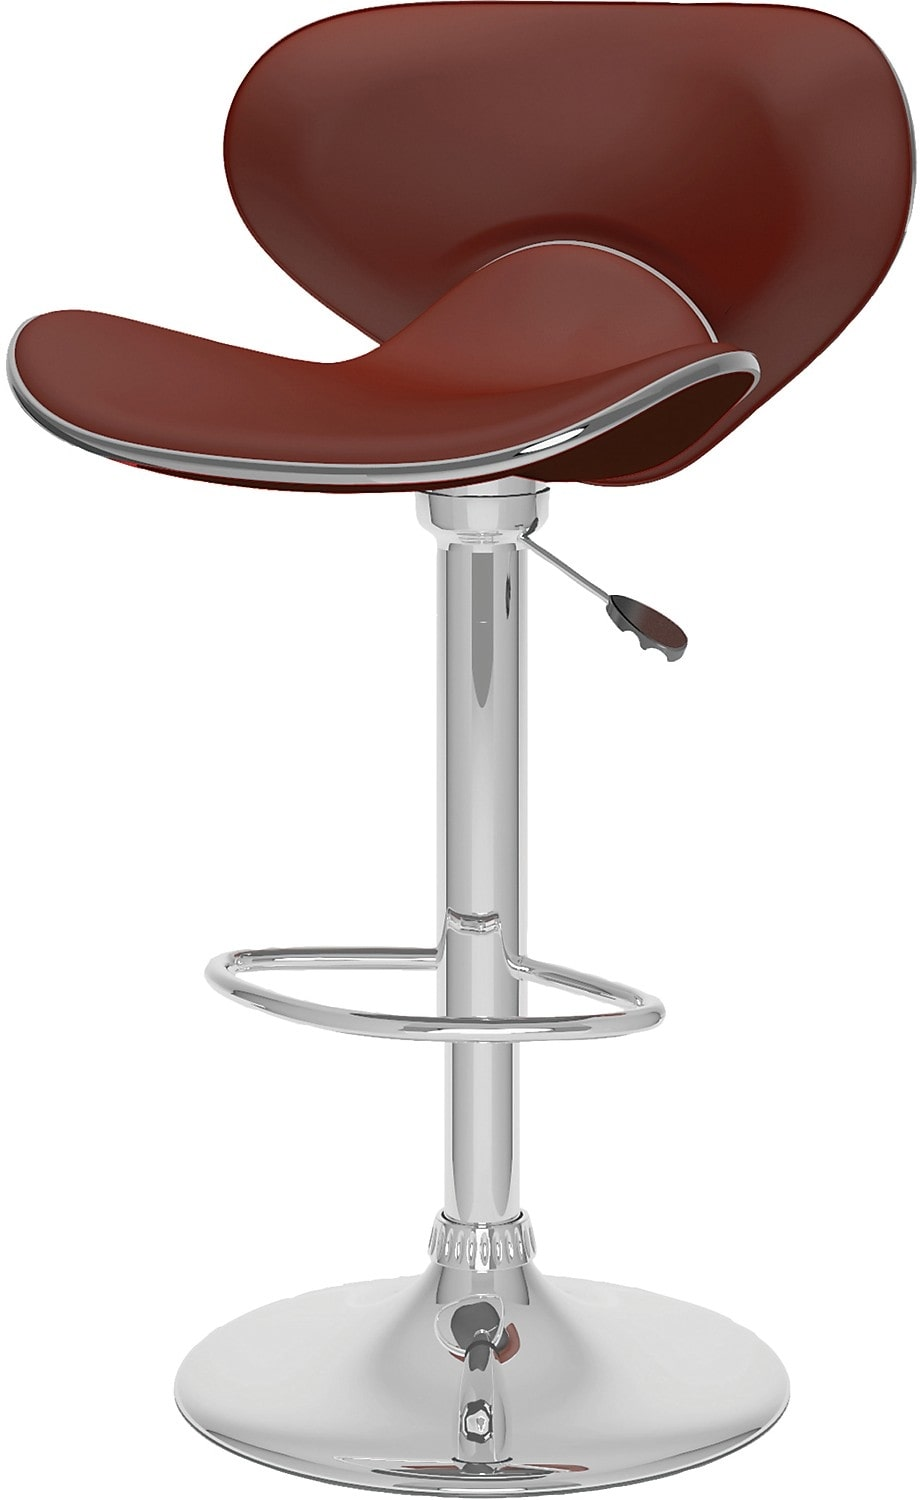 Dining Room Furniture - CorLiving Curved Form-Fitting Adjustable Bar Stool - Brown